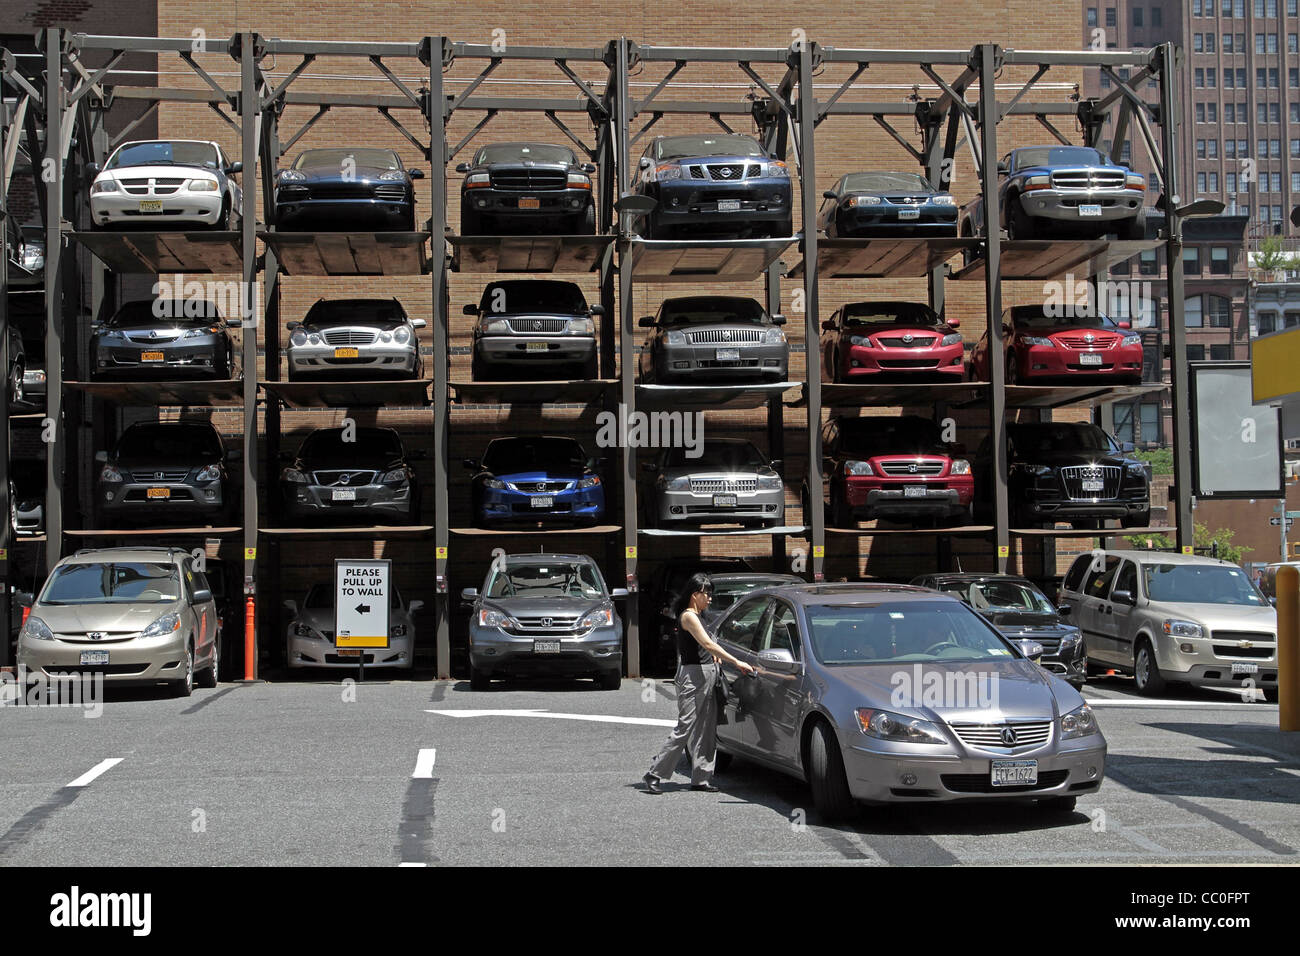 SUPERPOSITION OF CARS IN A MULTISTORY CAR PARK, MIDTOWN MANHATTAN, NEW YORK CITY, NEW YORK STATE, UNITED STATES - Stock Image